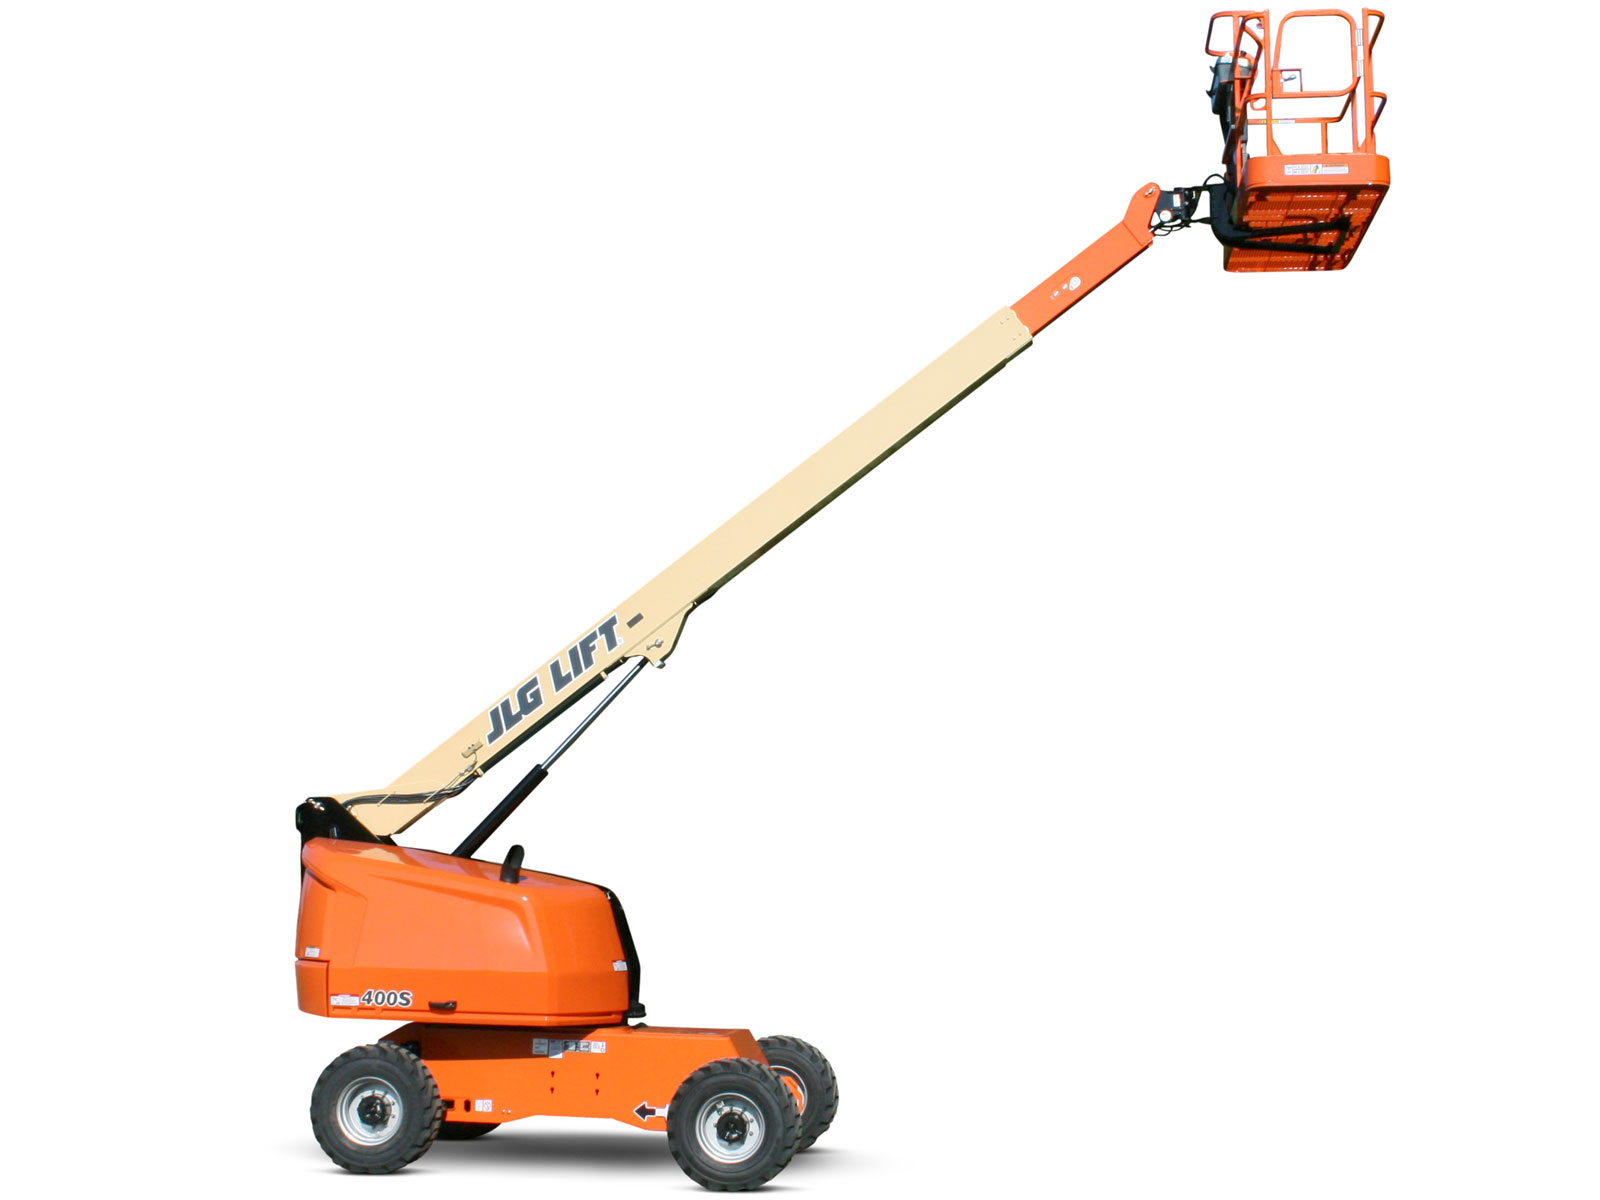 400s gallery silo?w=100 400s telescopic boom lift jlg  at crackthecode.co